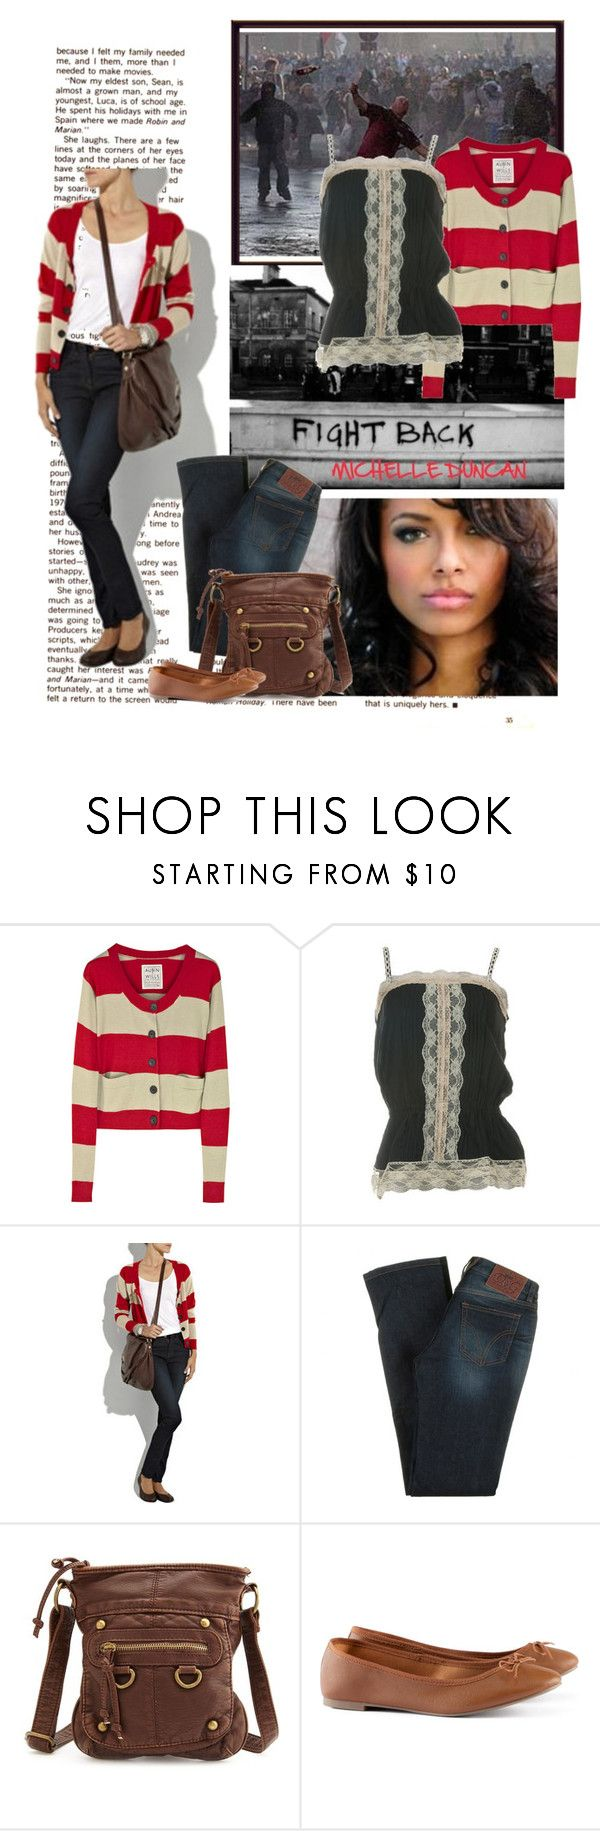 """""""Katerina Graham, riots"""" by ivanoe ❤ liked on Polyvore featuring GAS Jeans, Aubin & Wills, Metropark, D&G, Charlotte Russe and H&M"""